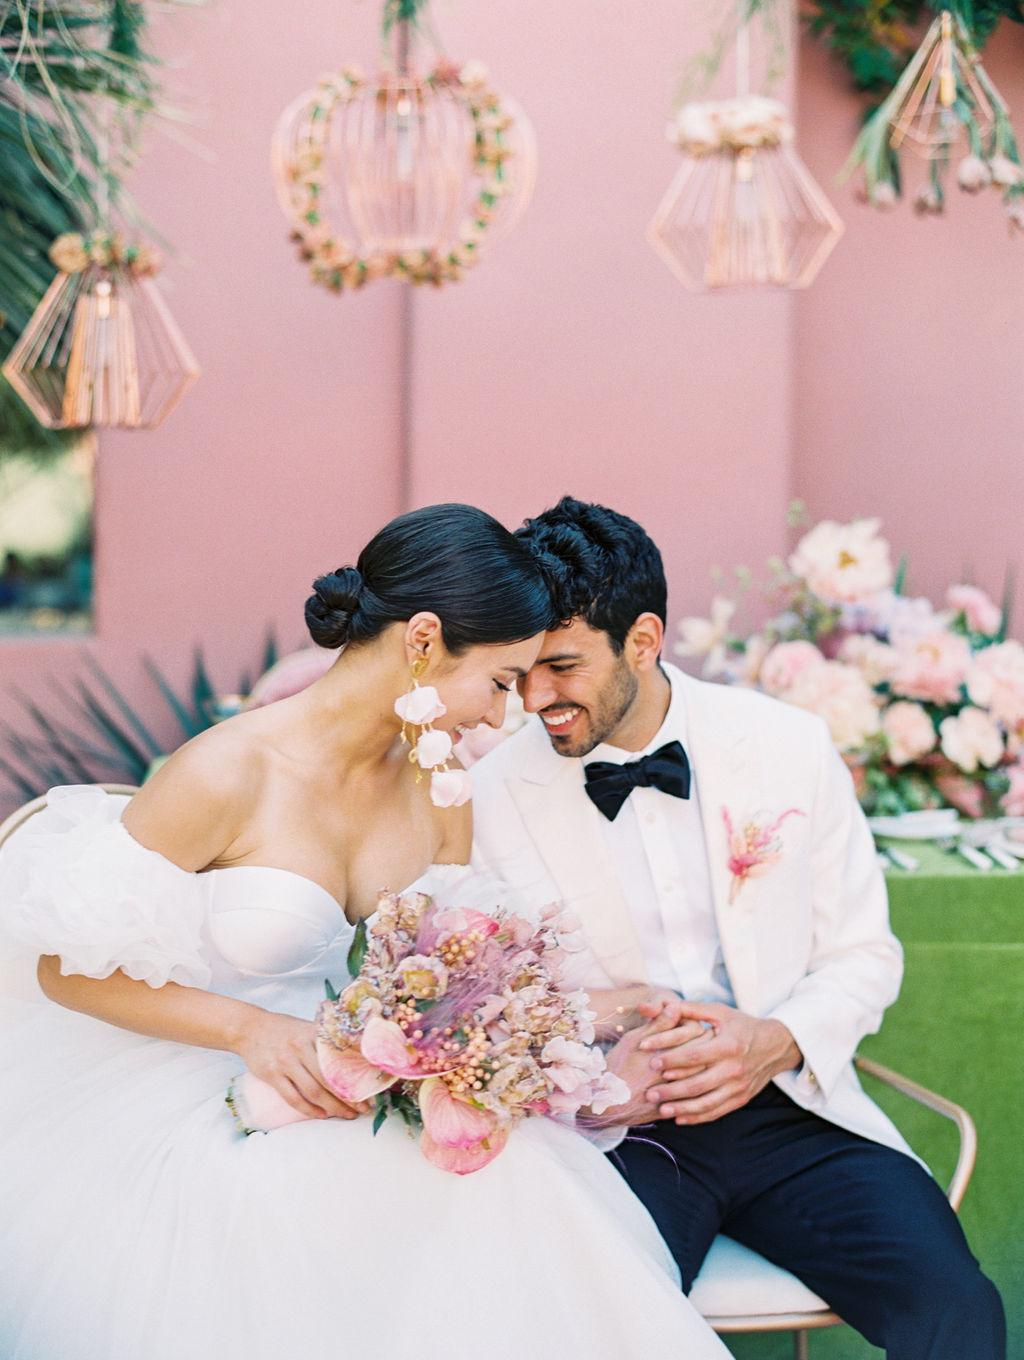 STYLED SHOOT WITH PINK TROPICAL WEDDING VIBES https://shopstyle.it/l/bhiiK